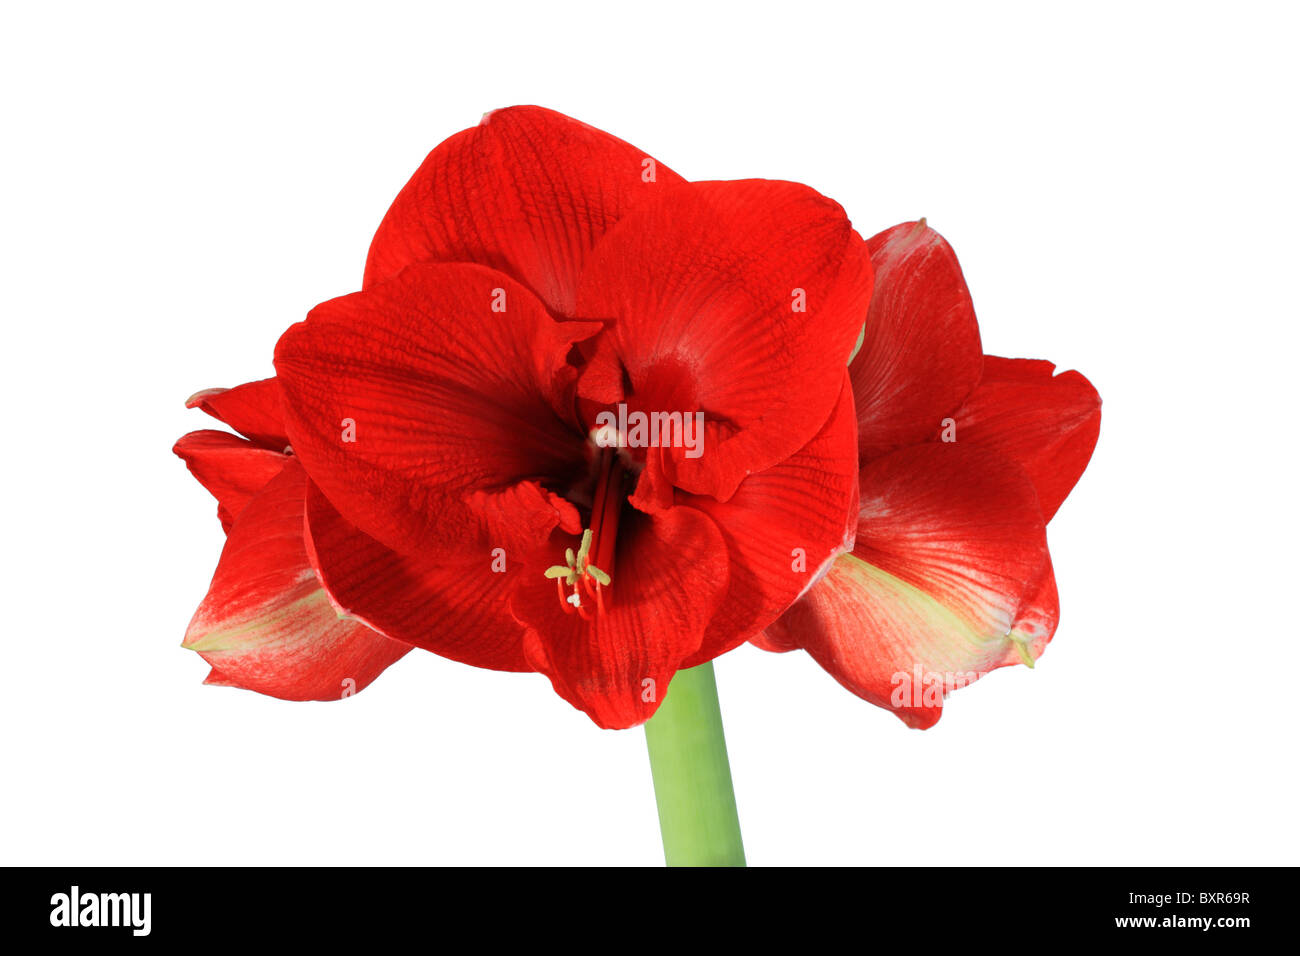 large red amaryllis flower isolated on white background Stock Photo